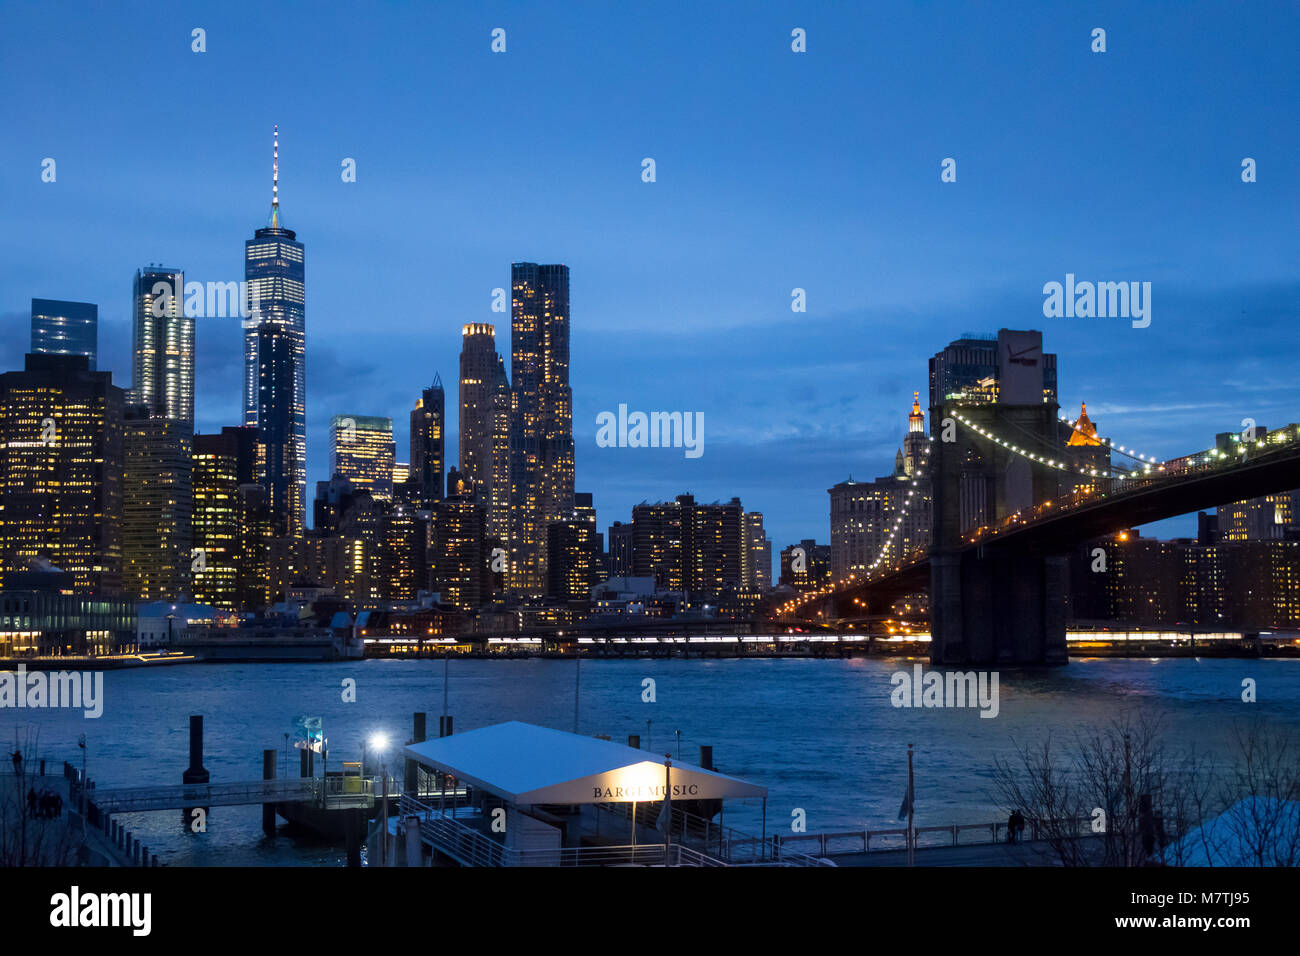 The Lower Manhattan skyline and the Brooklyn Bridge as seen across the East River from Dumbo Brooklyn at night - Stock Image